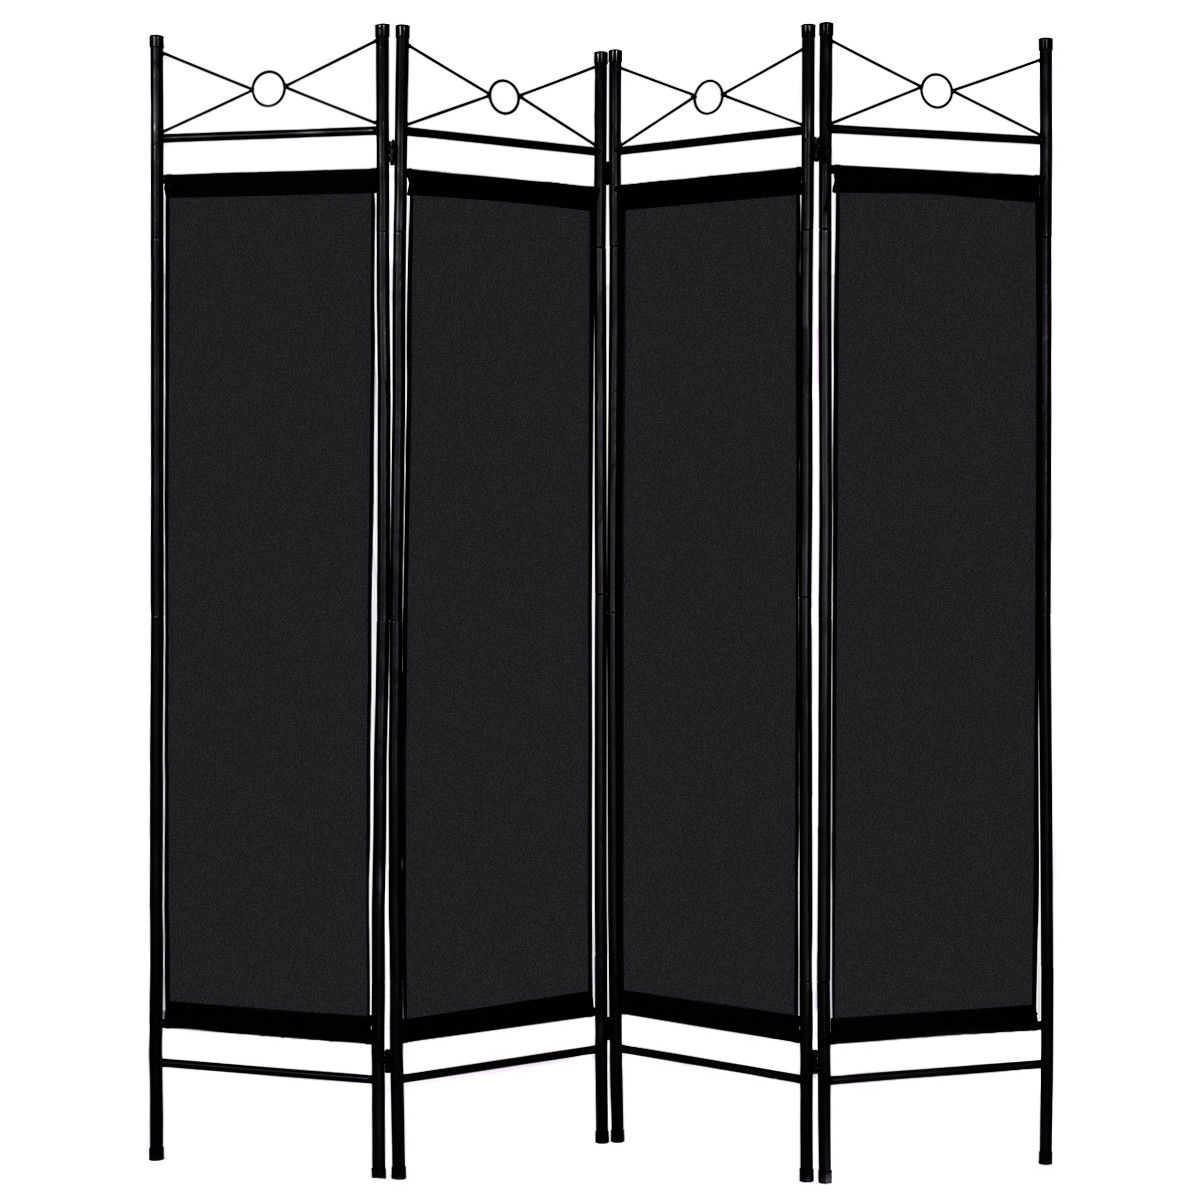 Costway Black 4 Panel Room Divider Privacy Screen Home Office Fabric Metal Frame Walmart Canada